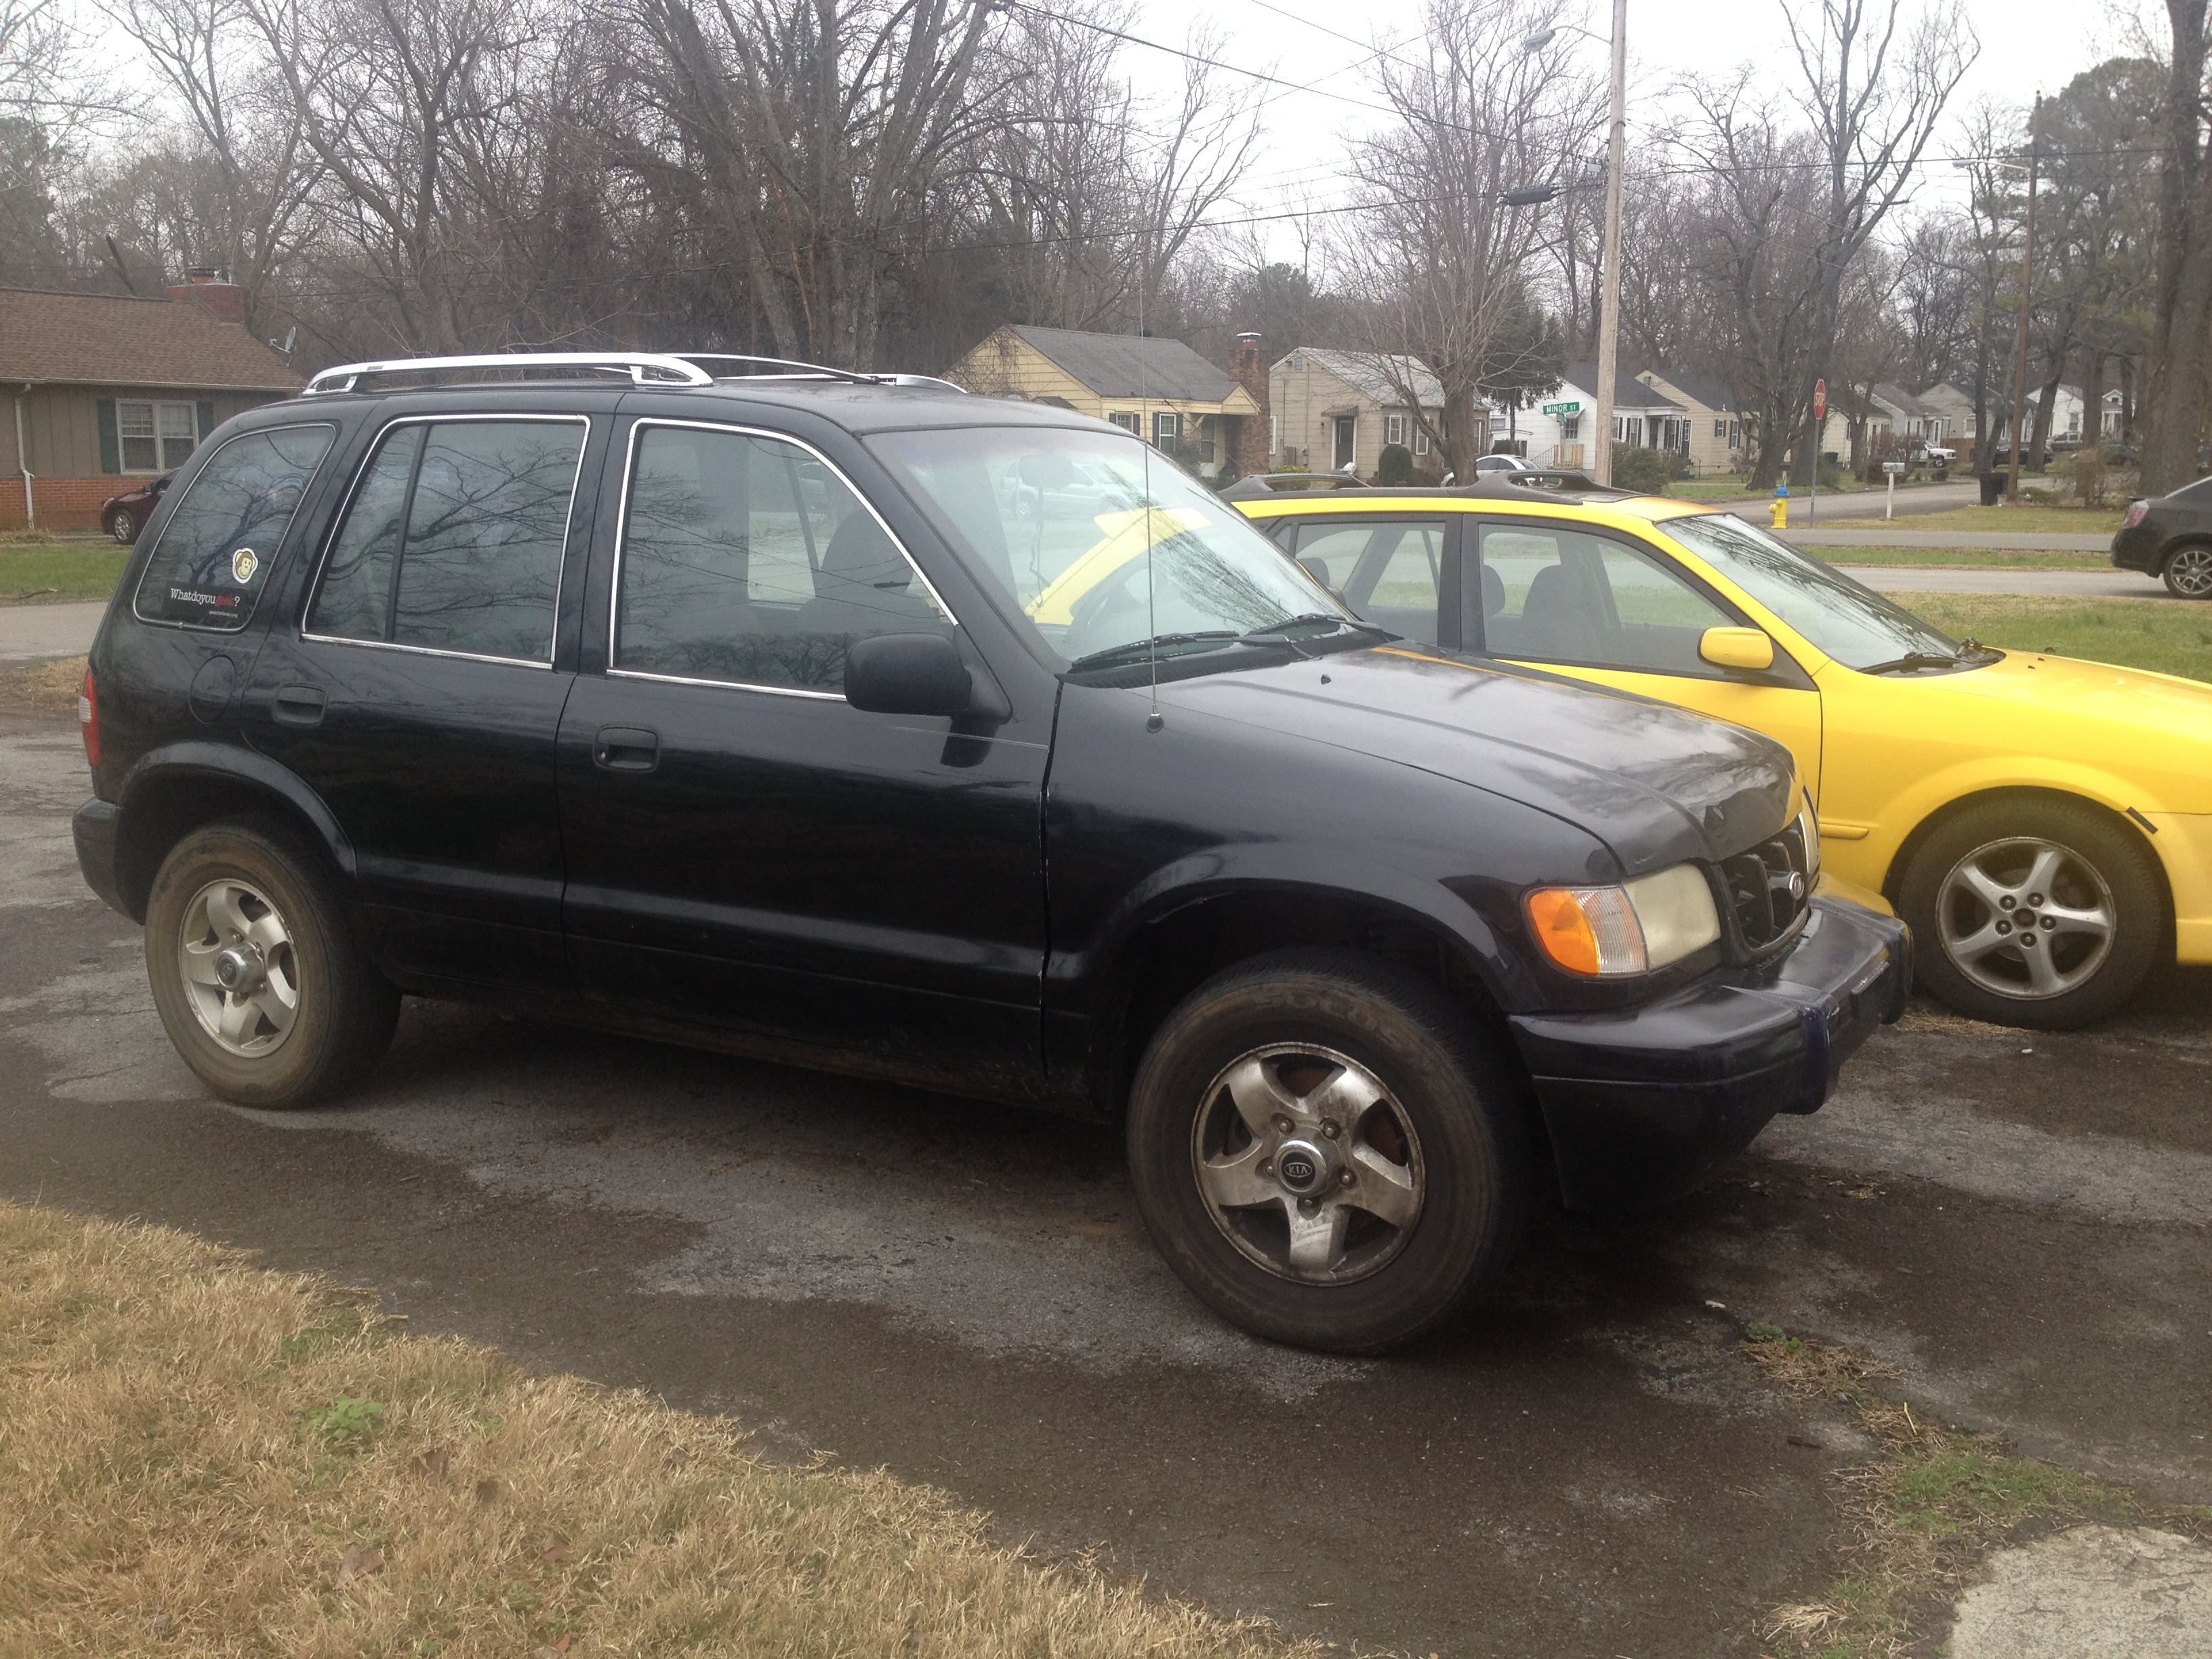 Cash for Cars Erie PA  Sell Your Junk Car  The Clunker Junker